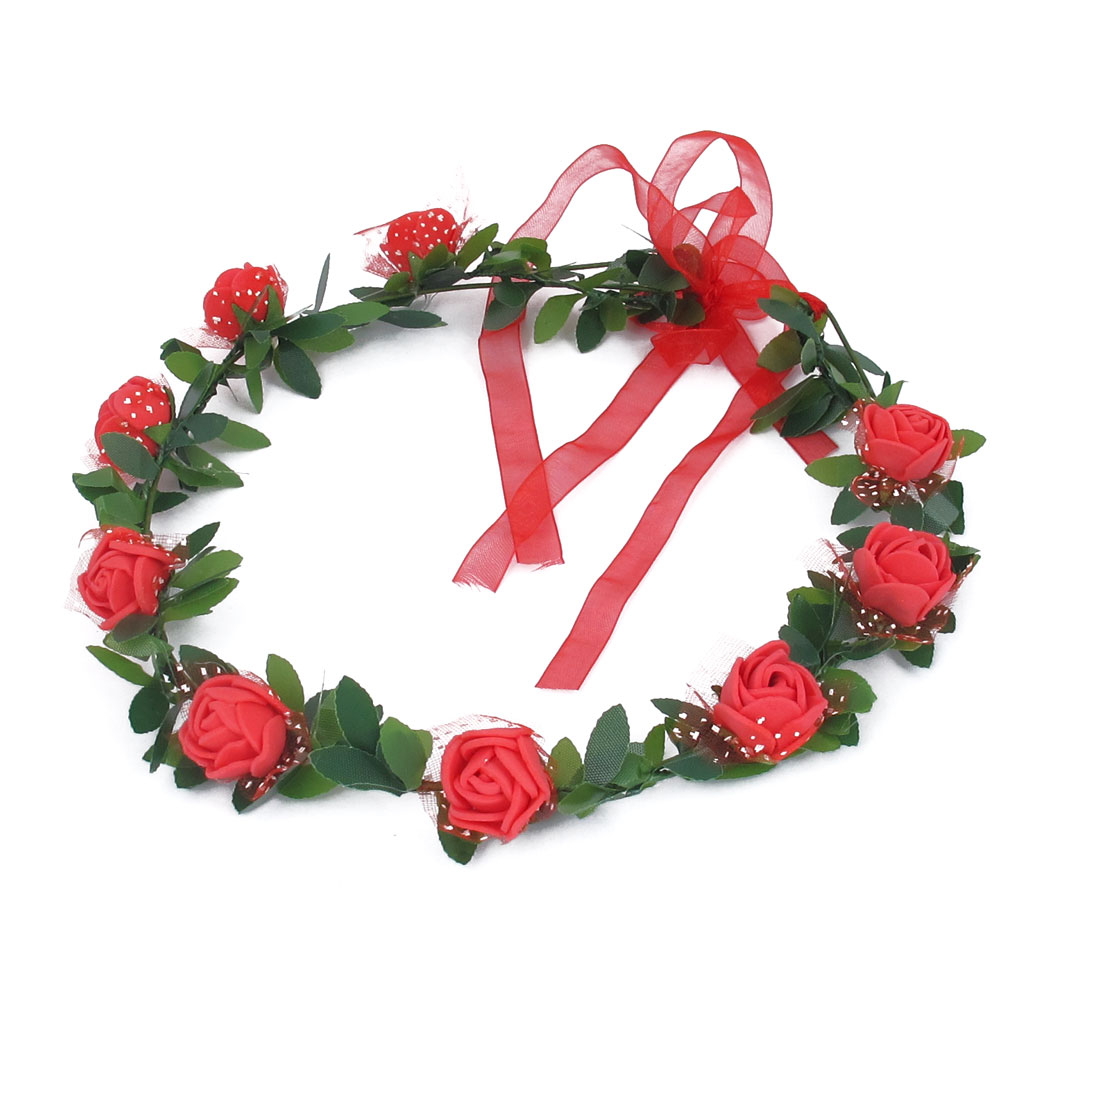 Lady Wedding Party Flower Decor Adjustable Headdress Hair Crown Wreath Red - image 3 de 3